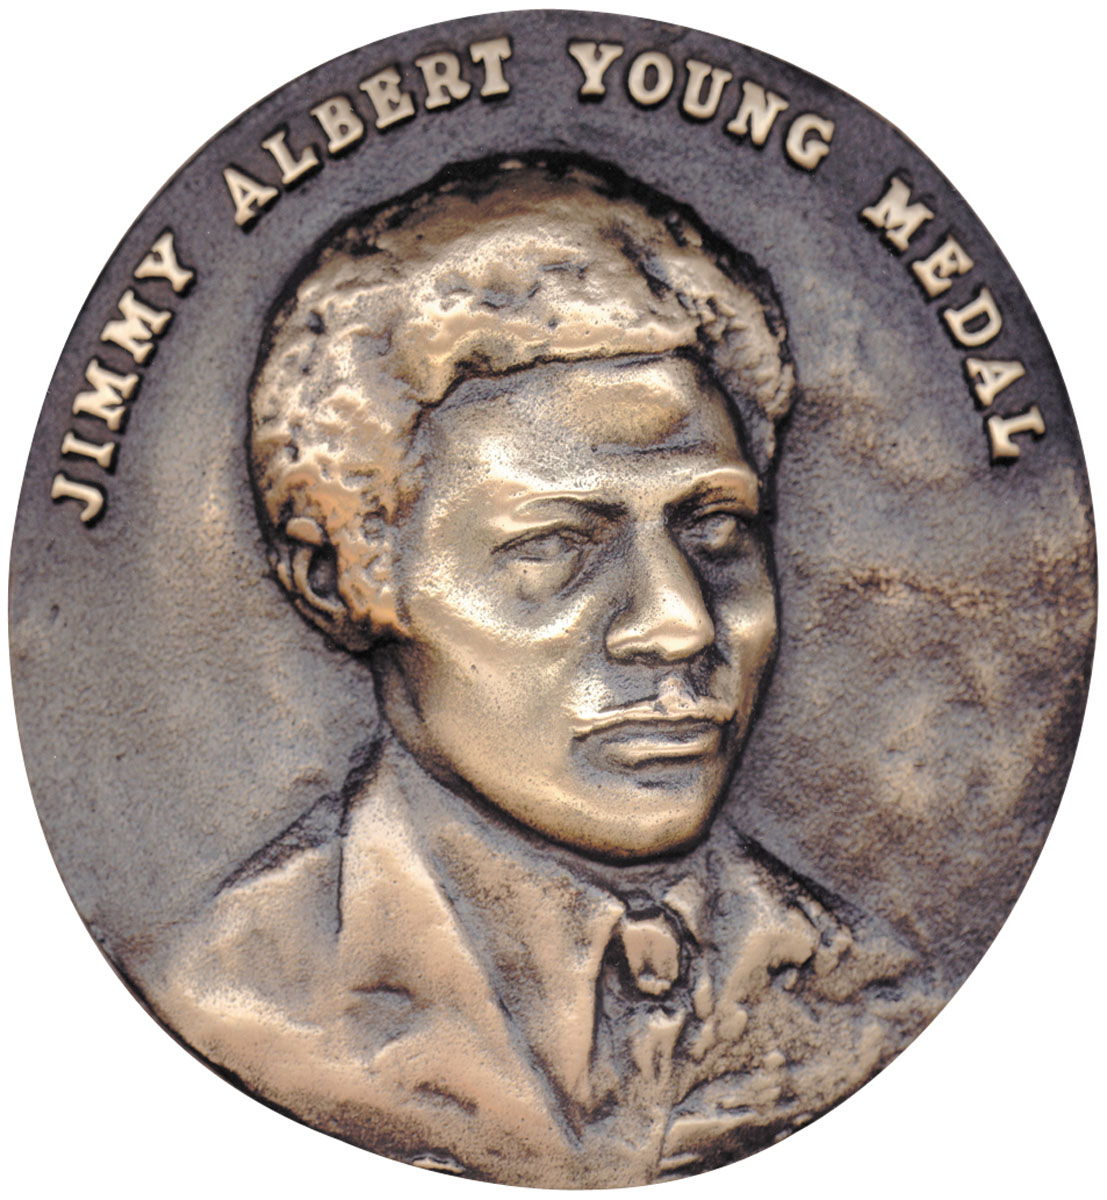 The Jimmy A. Young Medal